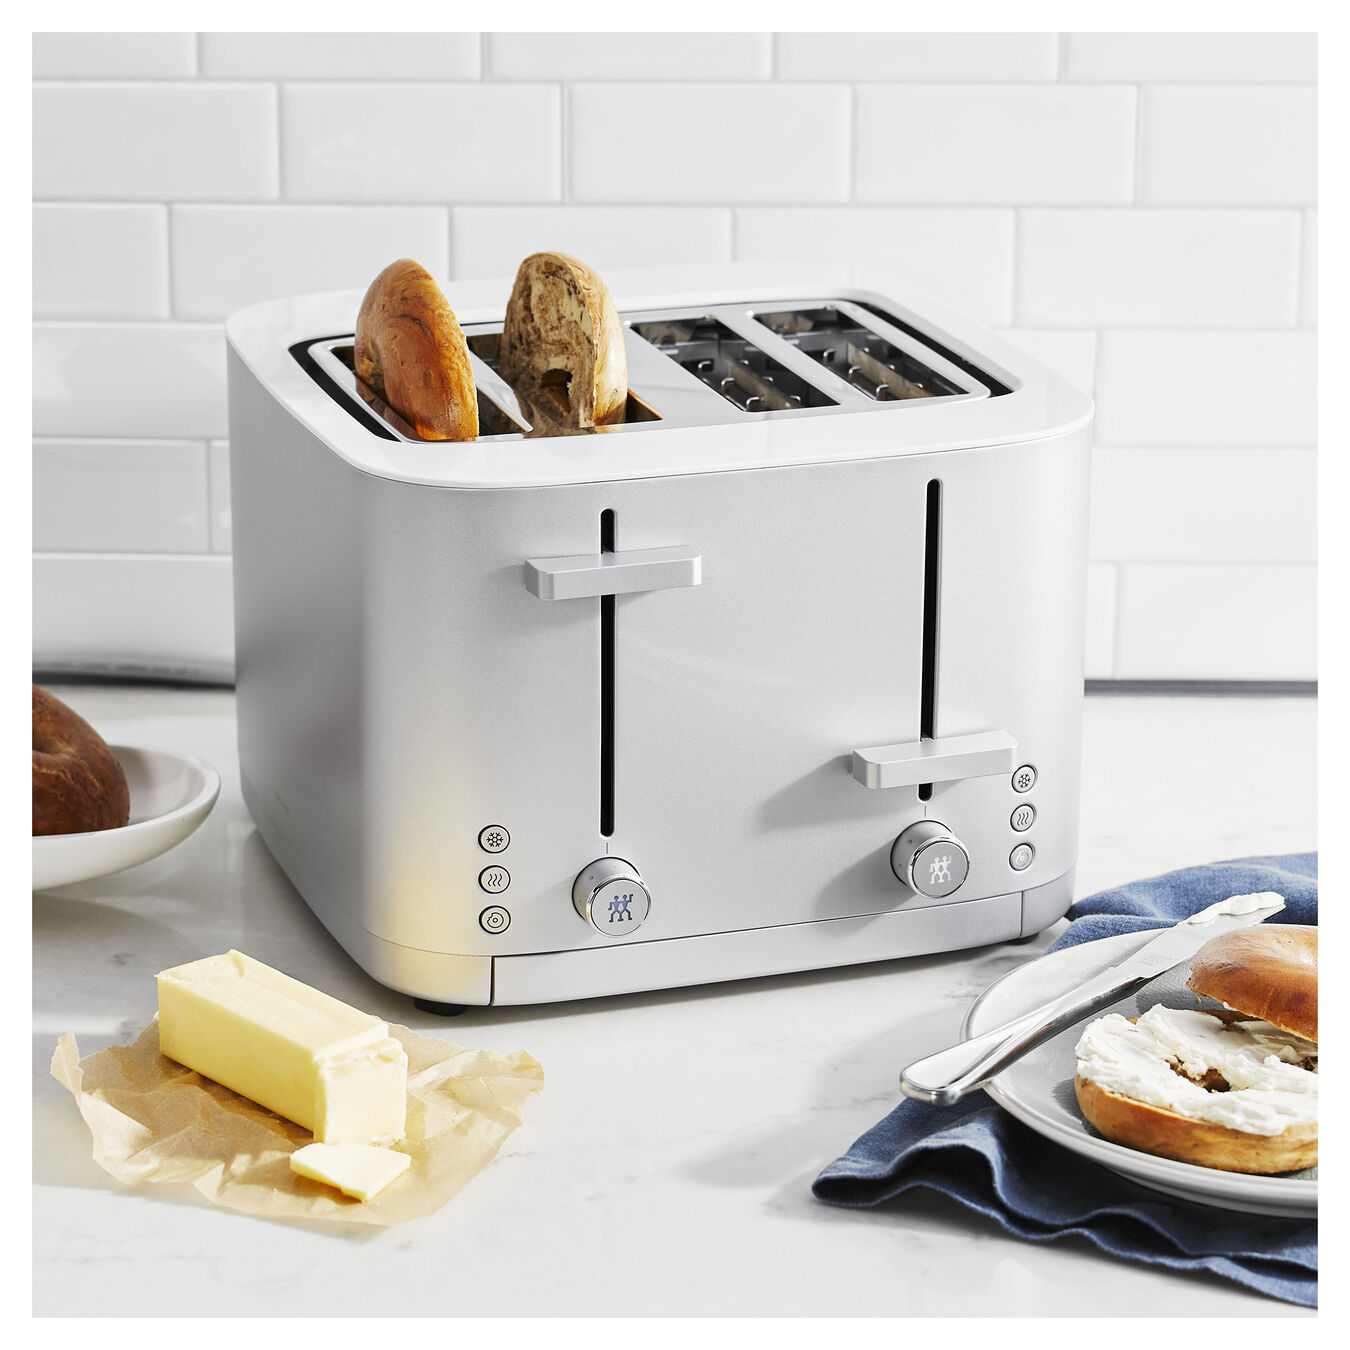 4-slot toaster,,large 4